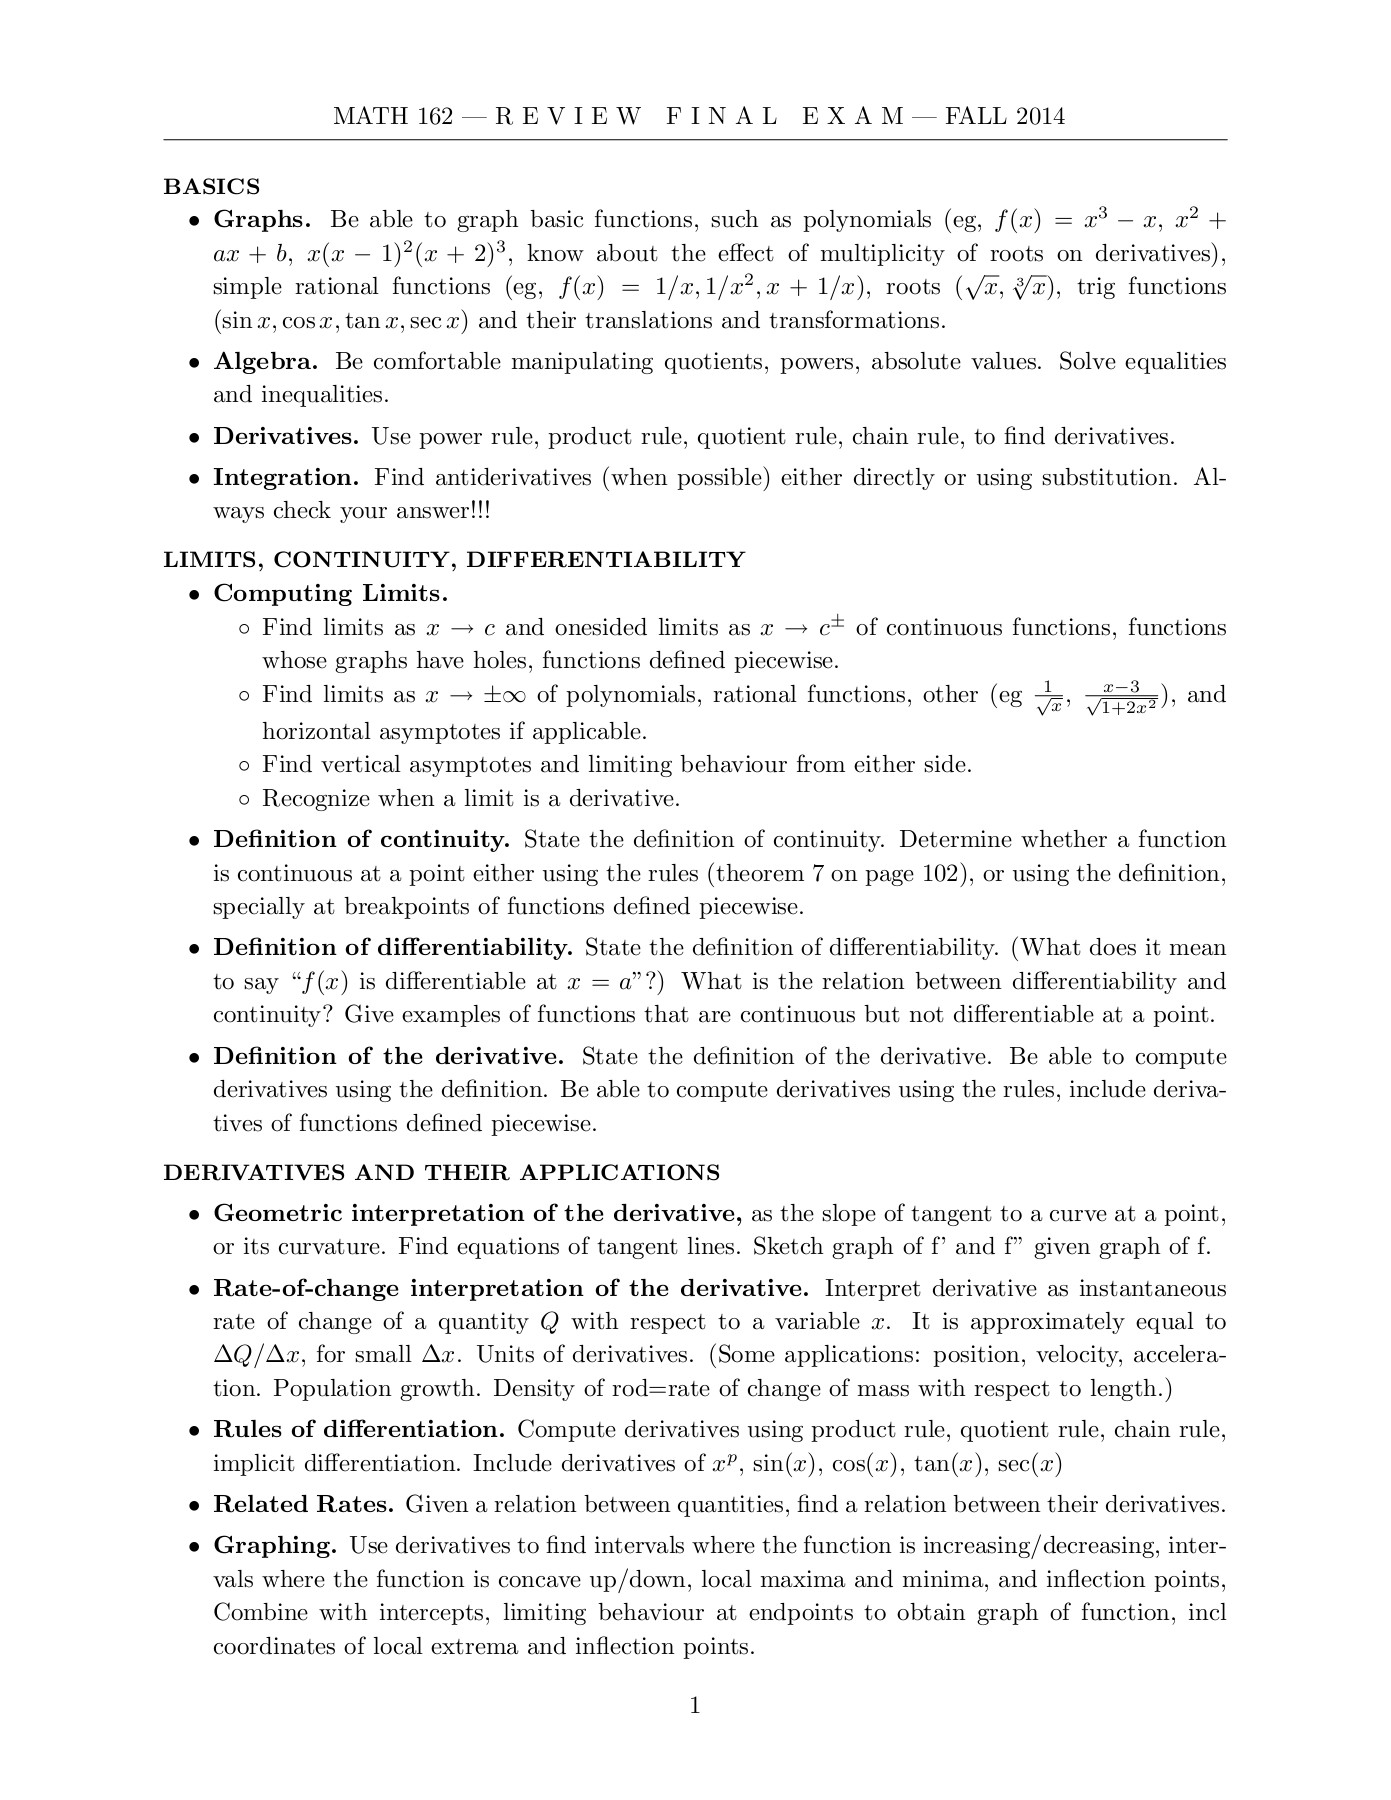 LIMITS, CONTINUITY, DIFFERENTIABILITY Pages 1 - 6 - Text Version